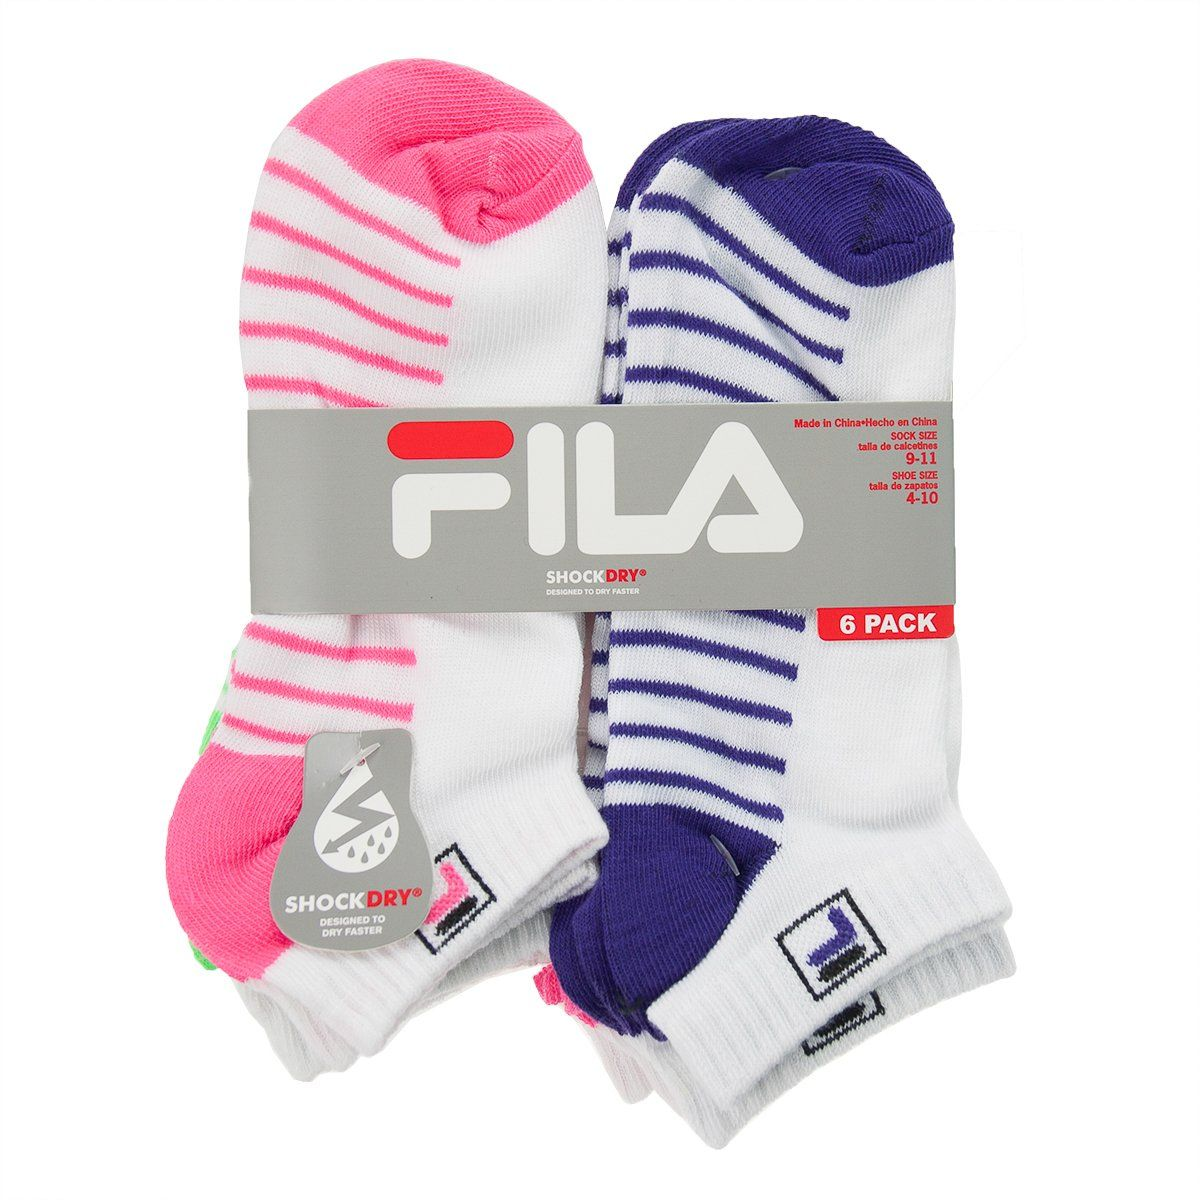 12 Pr WomensGirls FILA Shock Dry Ankle Socks Sport Low Cut